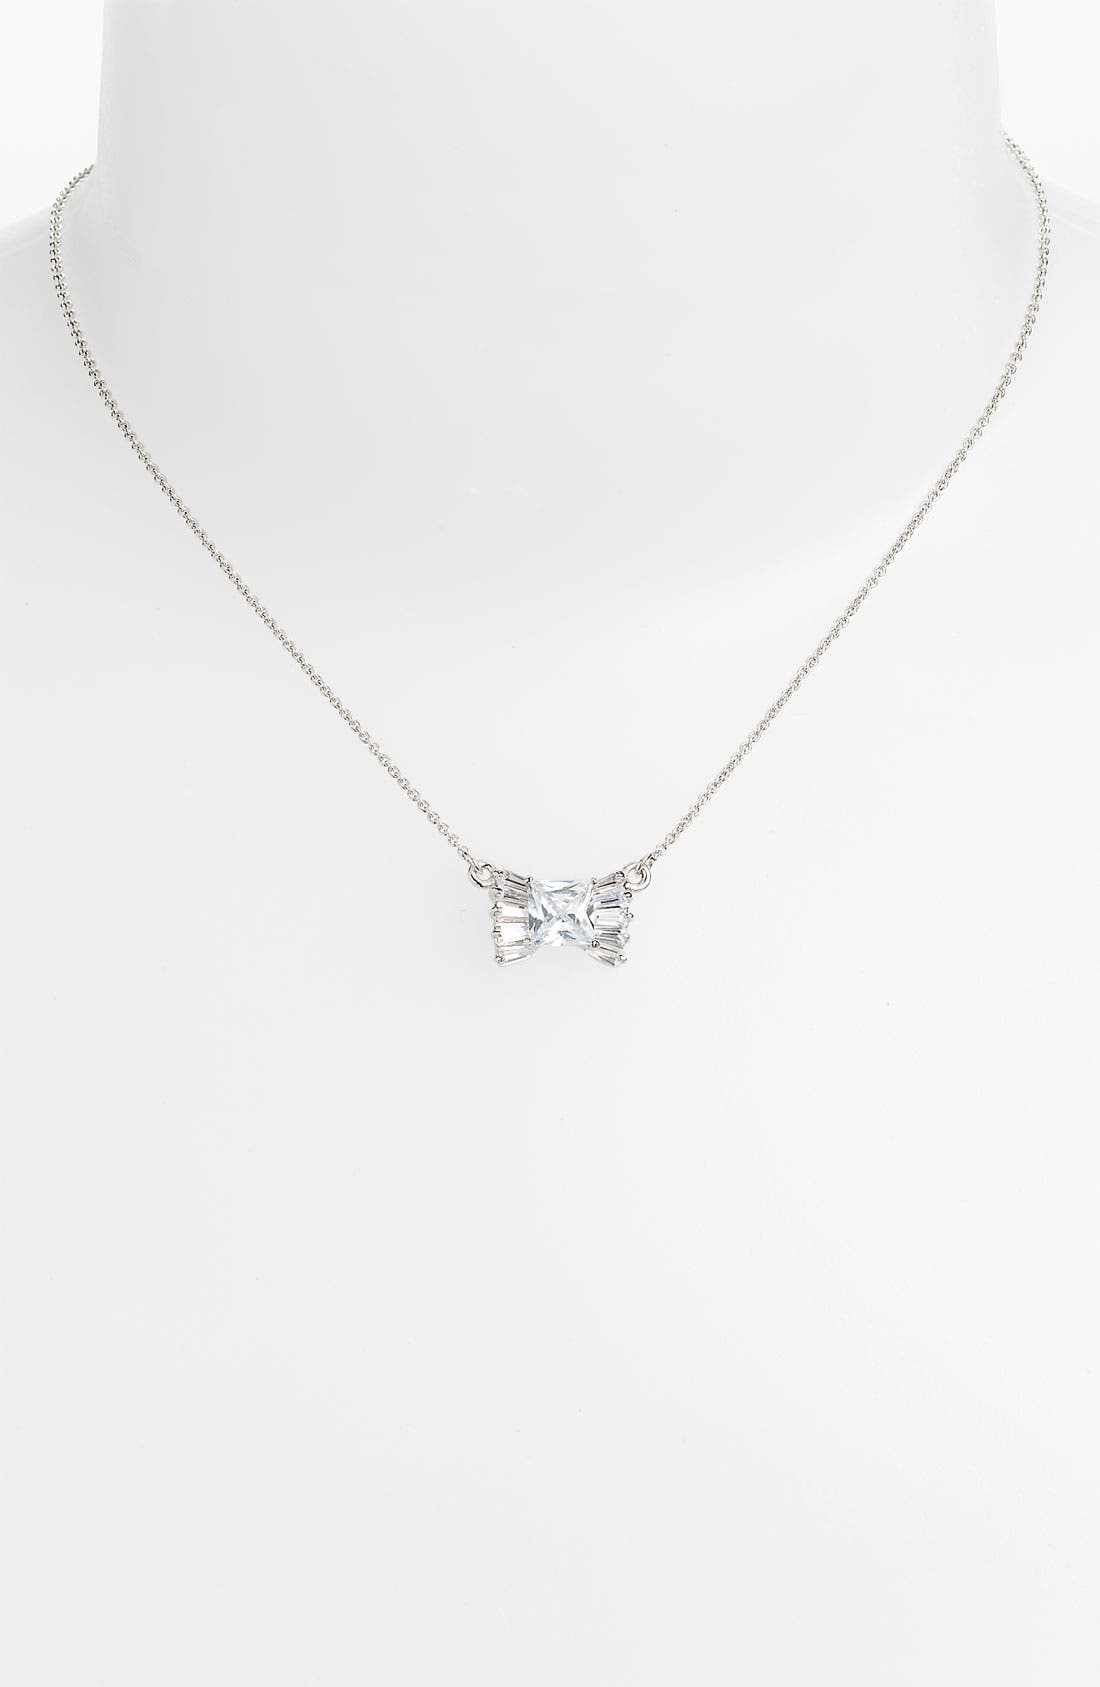 Alternate Image 1 Selected - kate spade new york 'le soir' bow pendant necklace